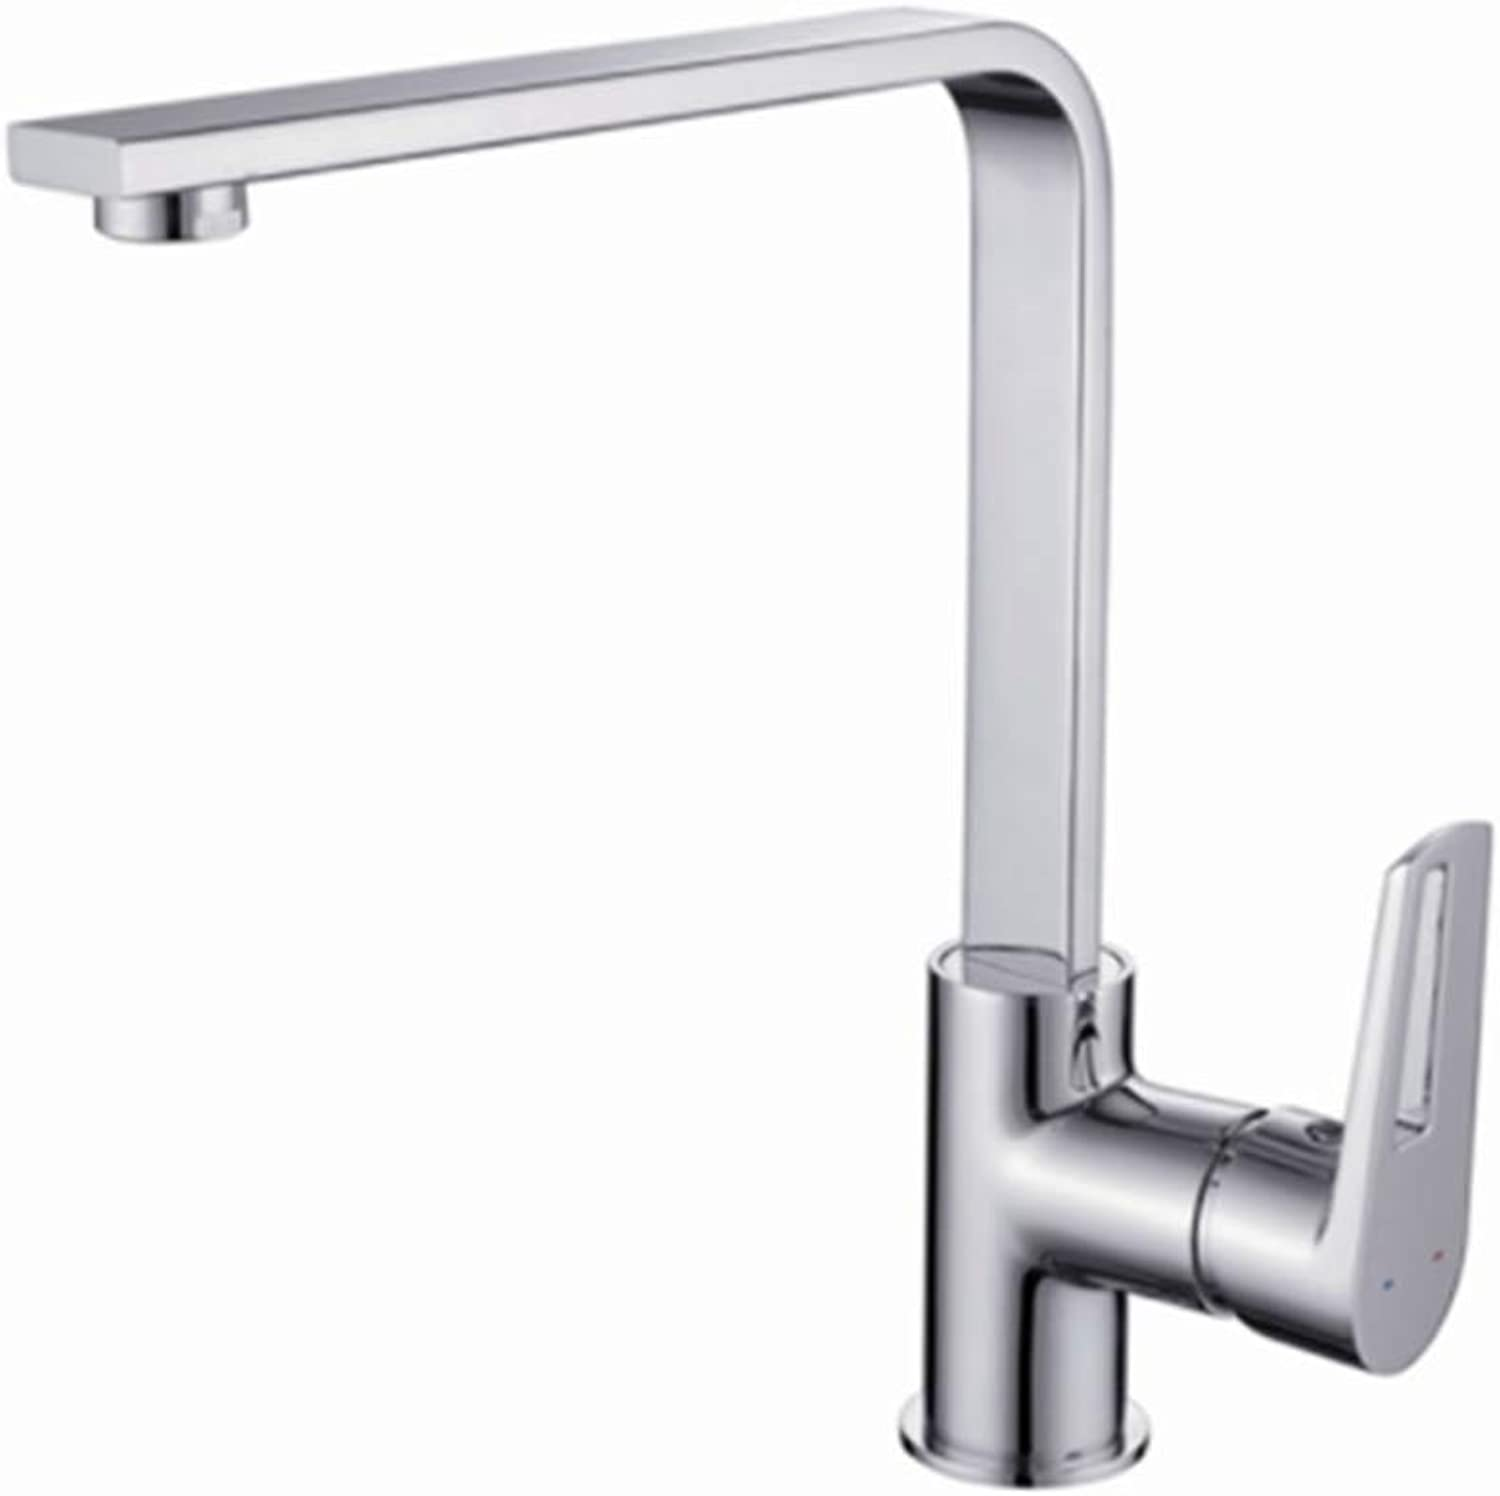 Taps Kitchen Basin Bathroom Washroombathroom Movable Kitchen Sink Faucet for Kitchen Sink Tap Contemporary Single Hole Single Handle Deck Mounted